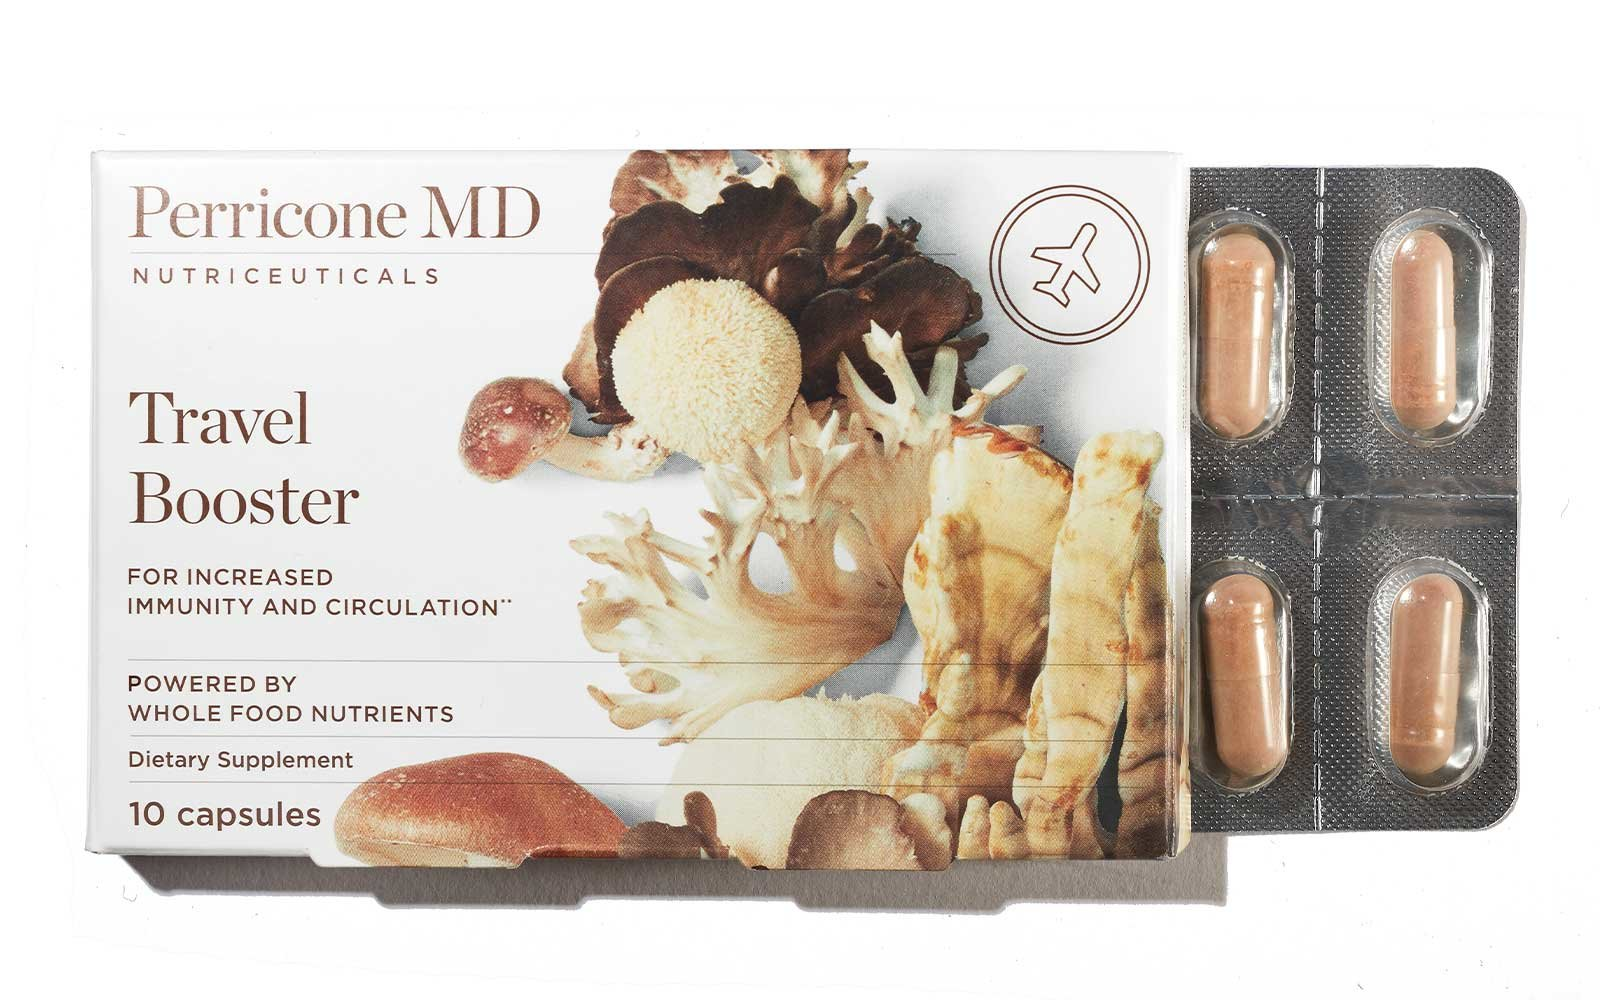 Perricone MD travel booster pills